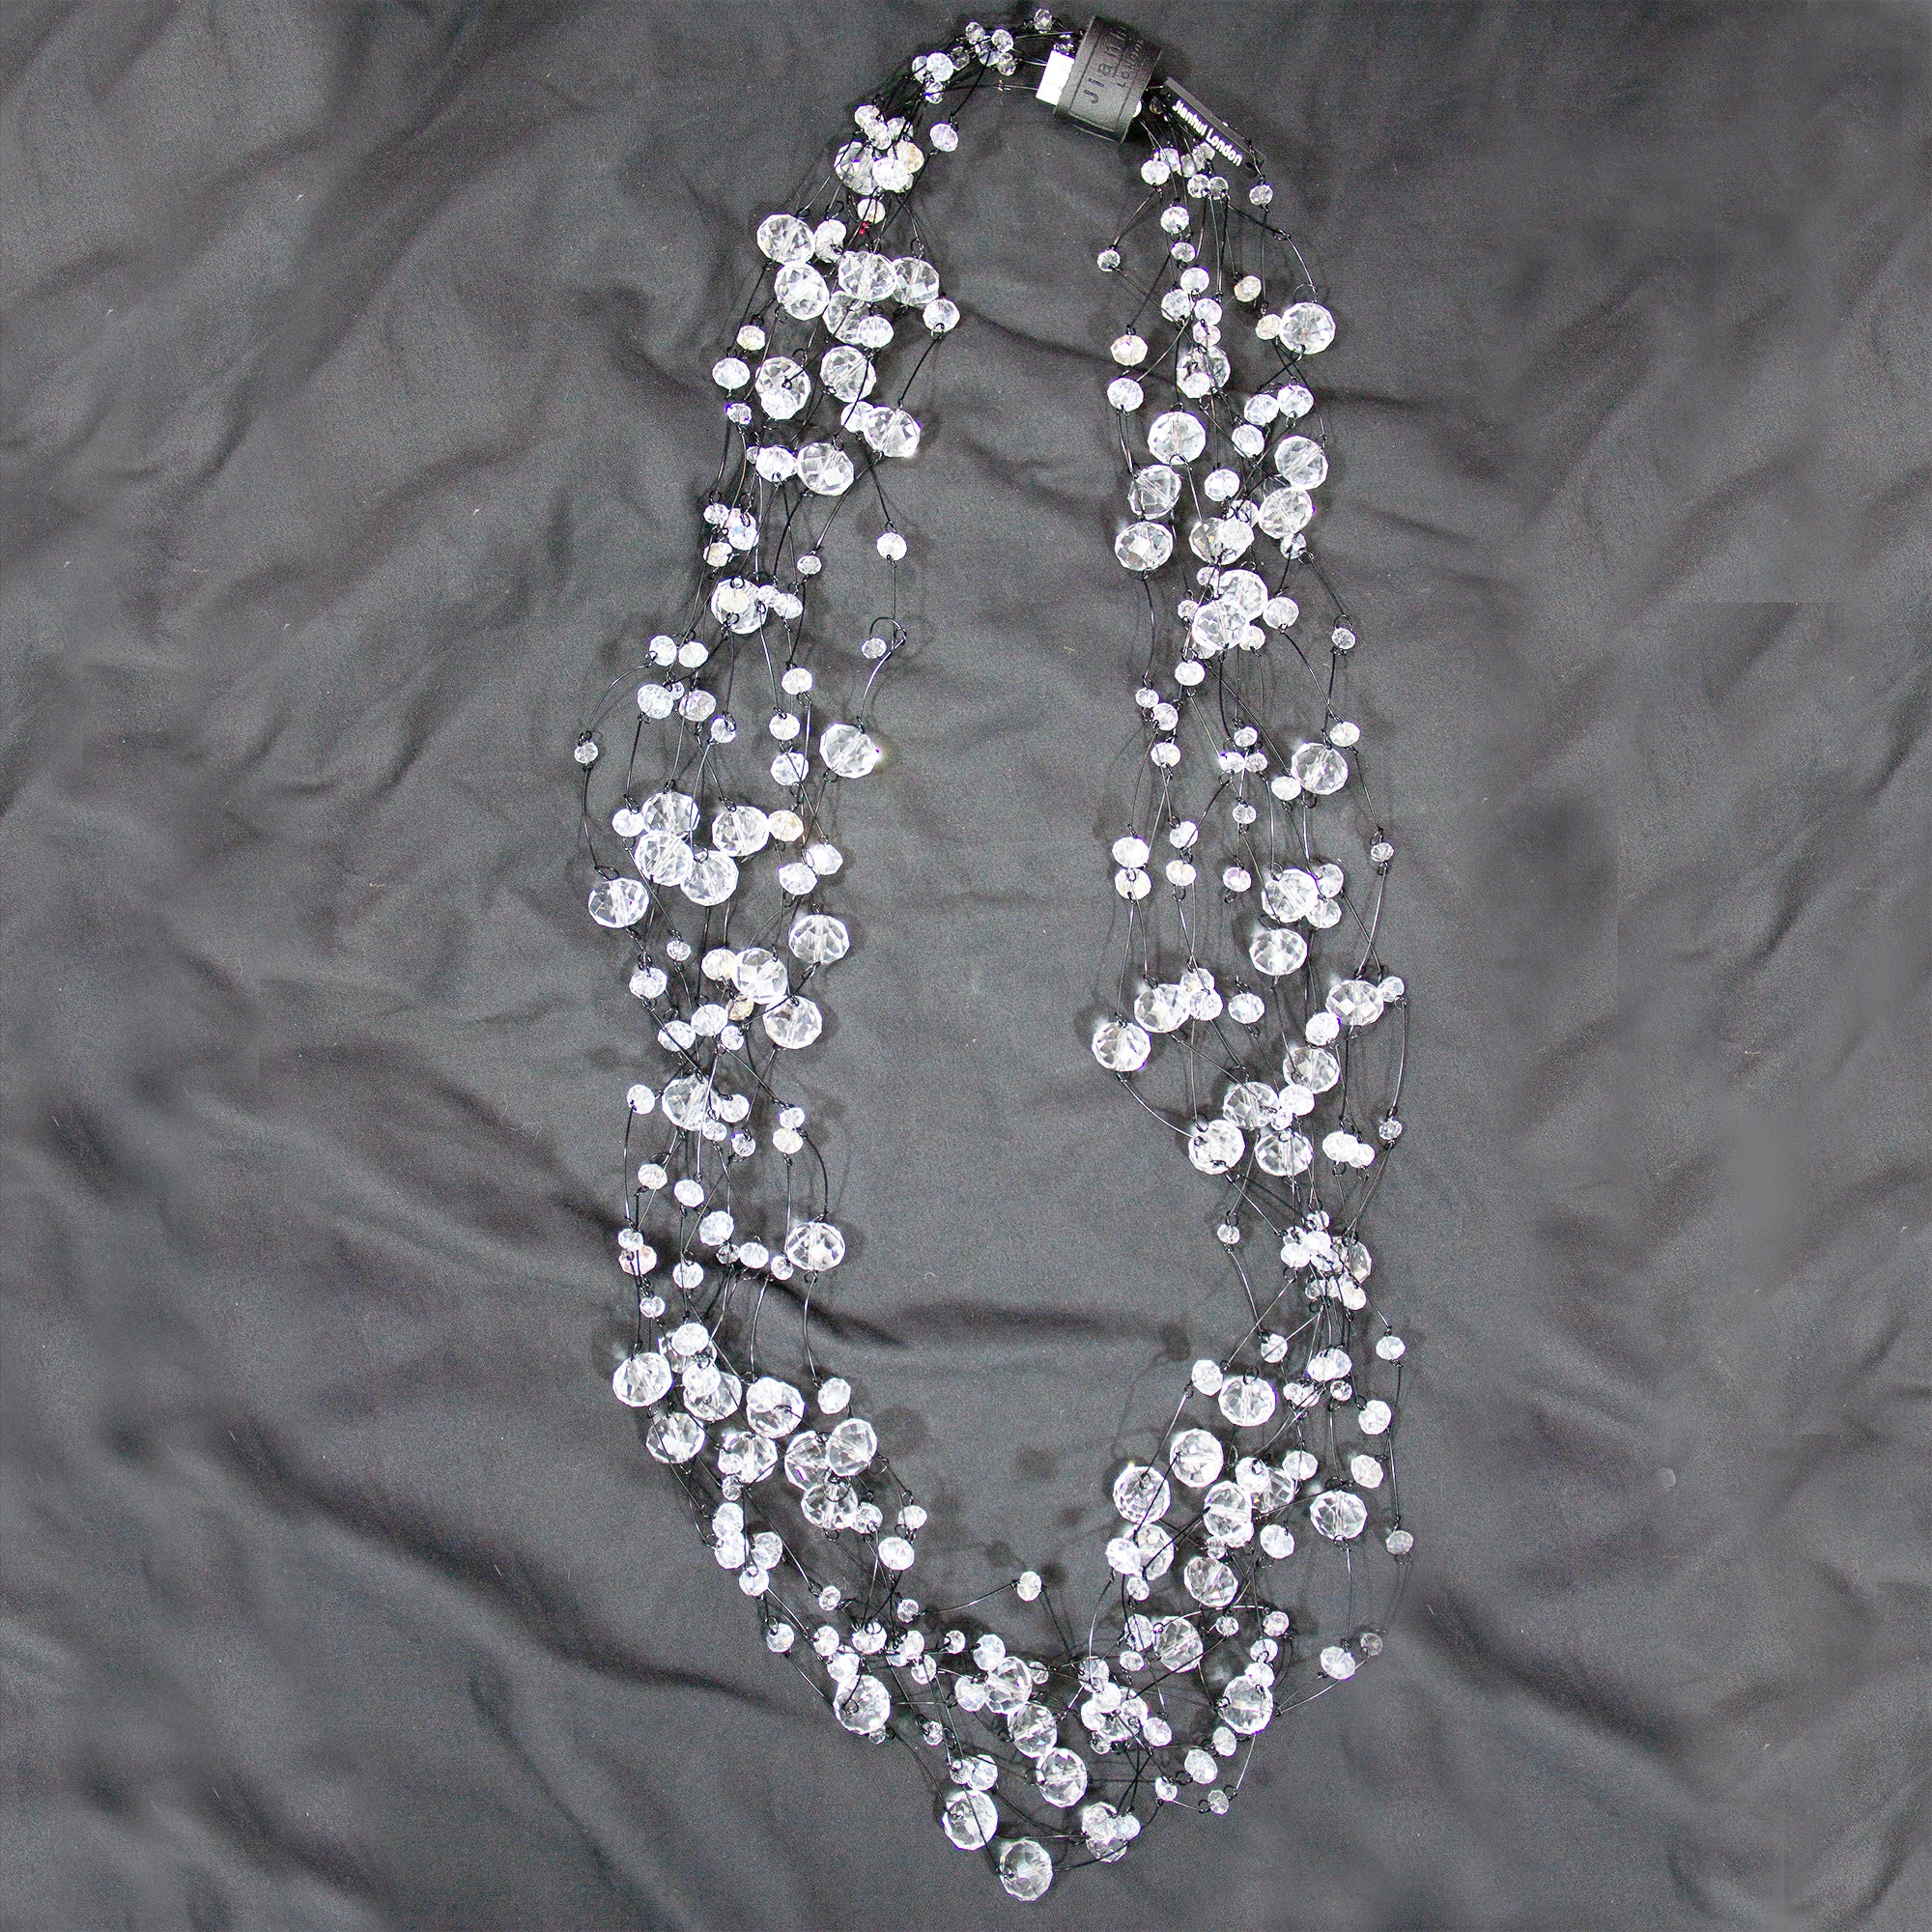 10 strand swarovski crystal necklace by Jianhui of London